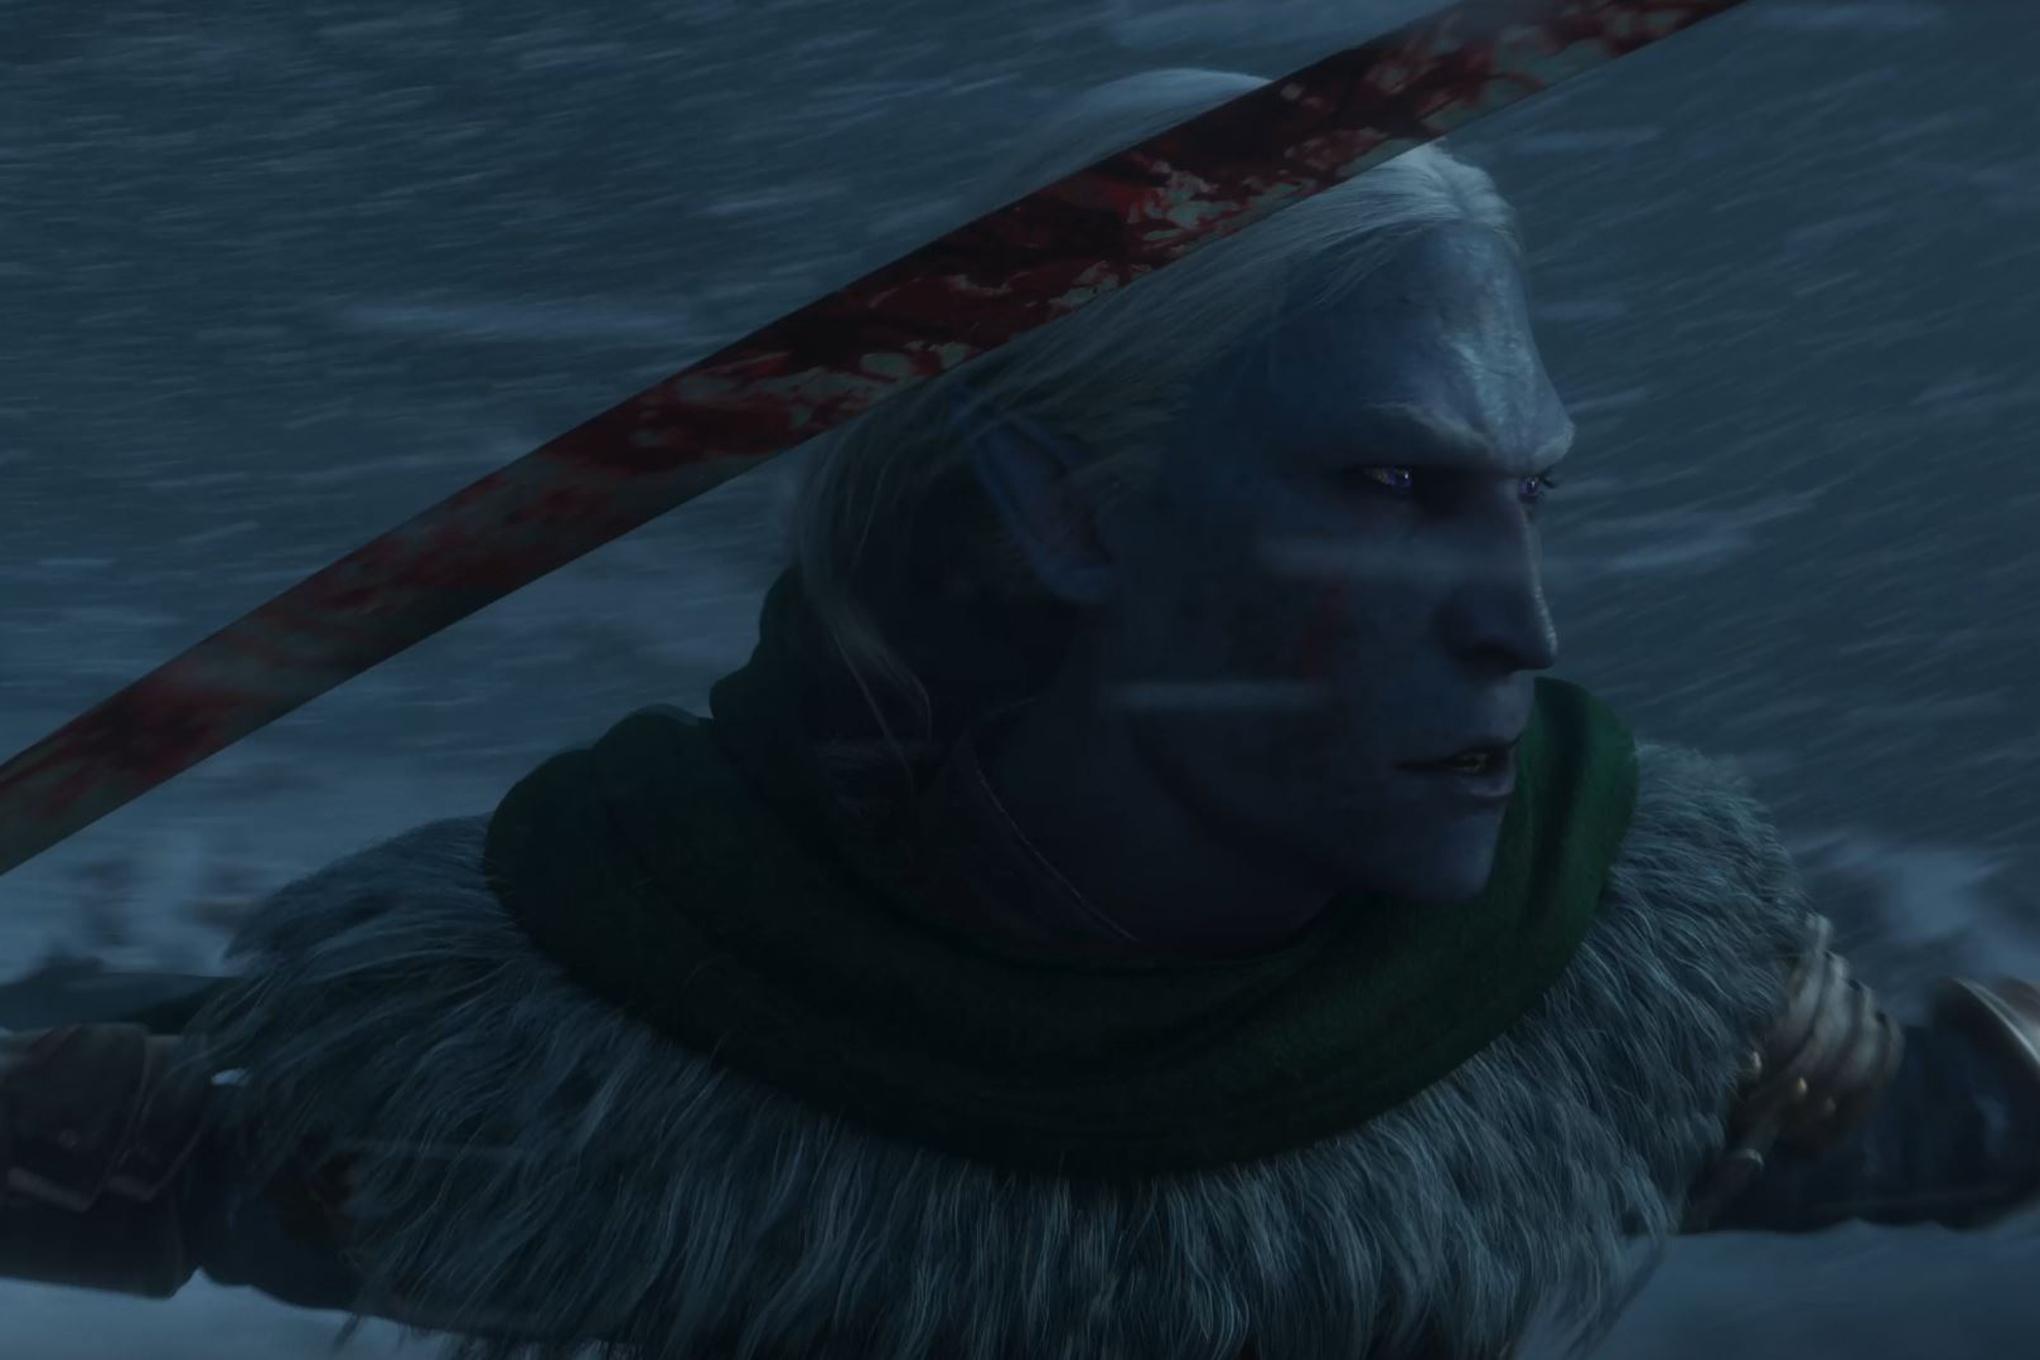 A close up of Drizzt Do'Urden from the CGI trailer announcing Dark Alliance, from Tuque Games and published by Wizards of the Coast. It shows a bloody dark elf in a snowstorm.